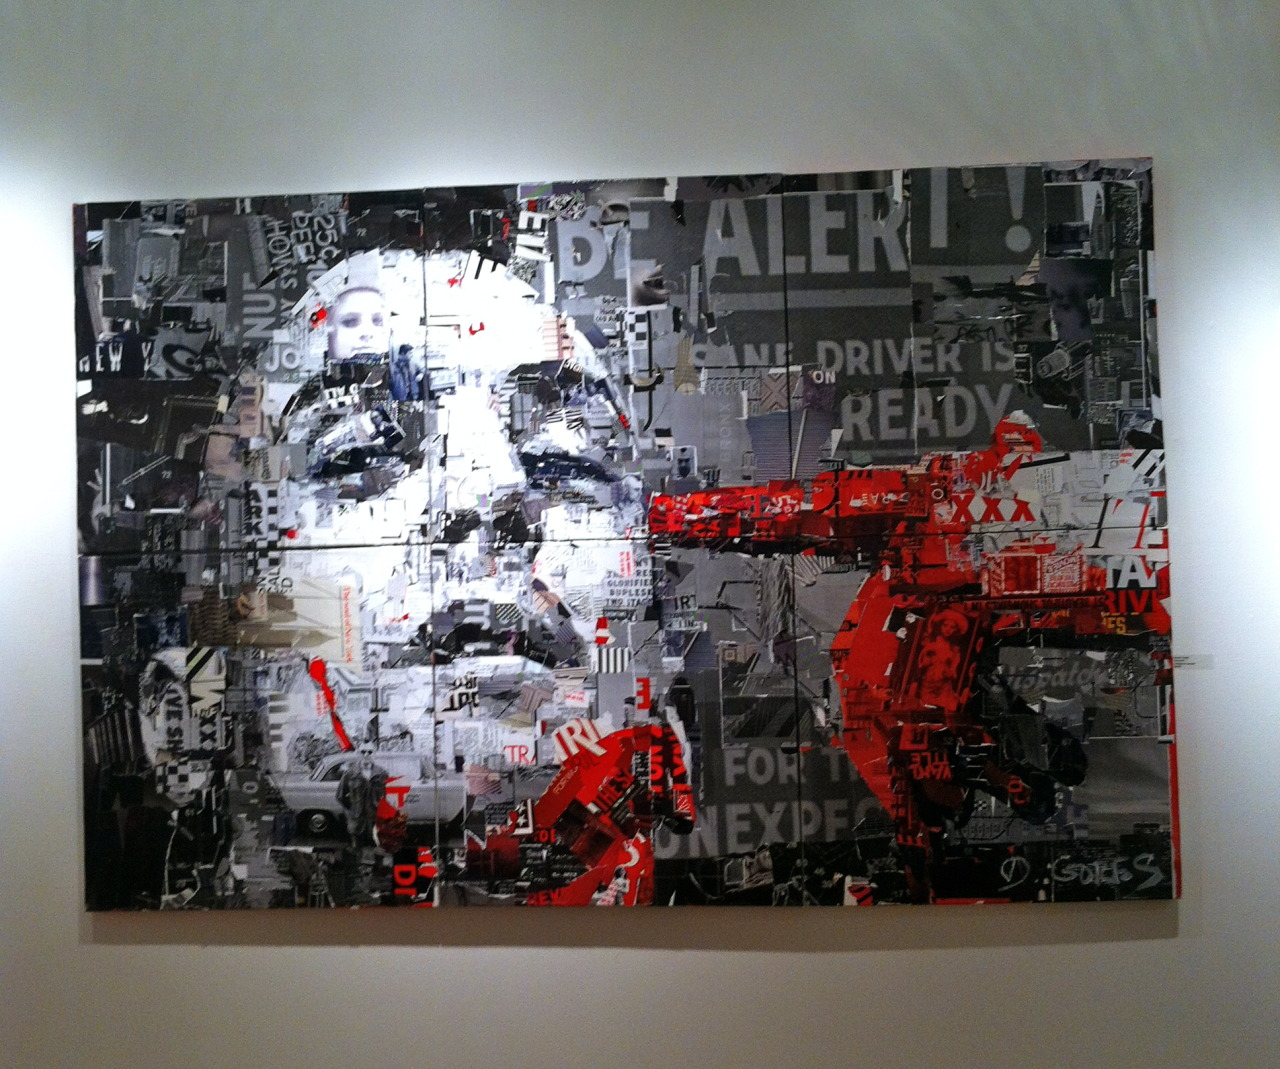 """Be Alert!…"" by New Yorker artist Derek Gores, collage on canvas, ""…in his collage portraits, Derek Gores recycles magazines, labels, data, and assorted found analog and digital materials to create the works on canvas….""  Last week-end Bold Hype Gallery, an art space in Chelsea, hosted ""Scorsese: An Art Show Tribute,"" an exhibition commemorating the life and work of one of New York City's most beloved filmmakers."